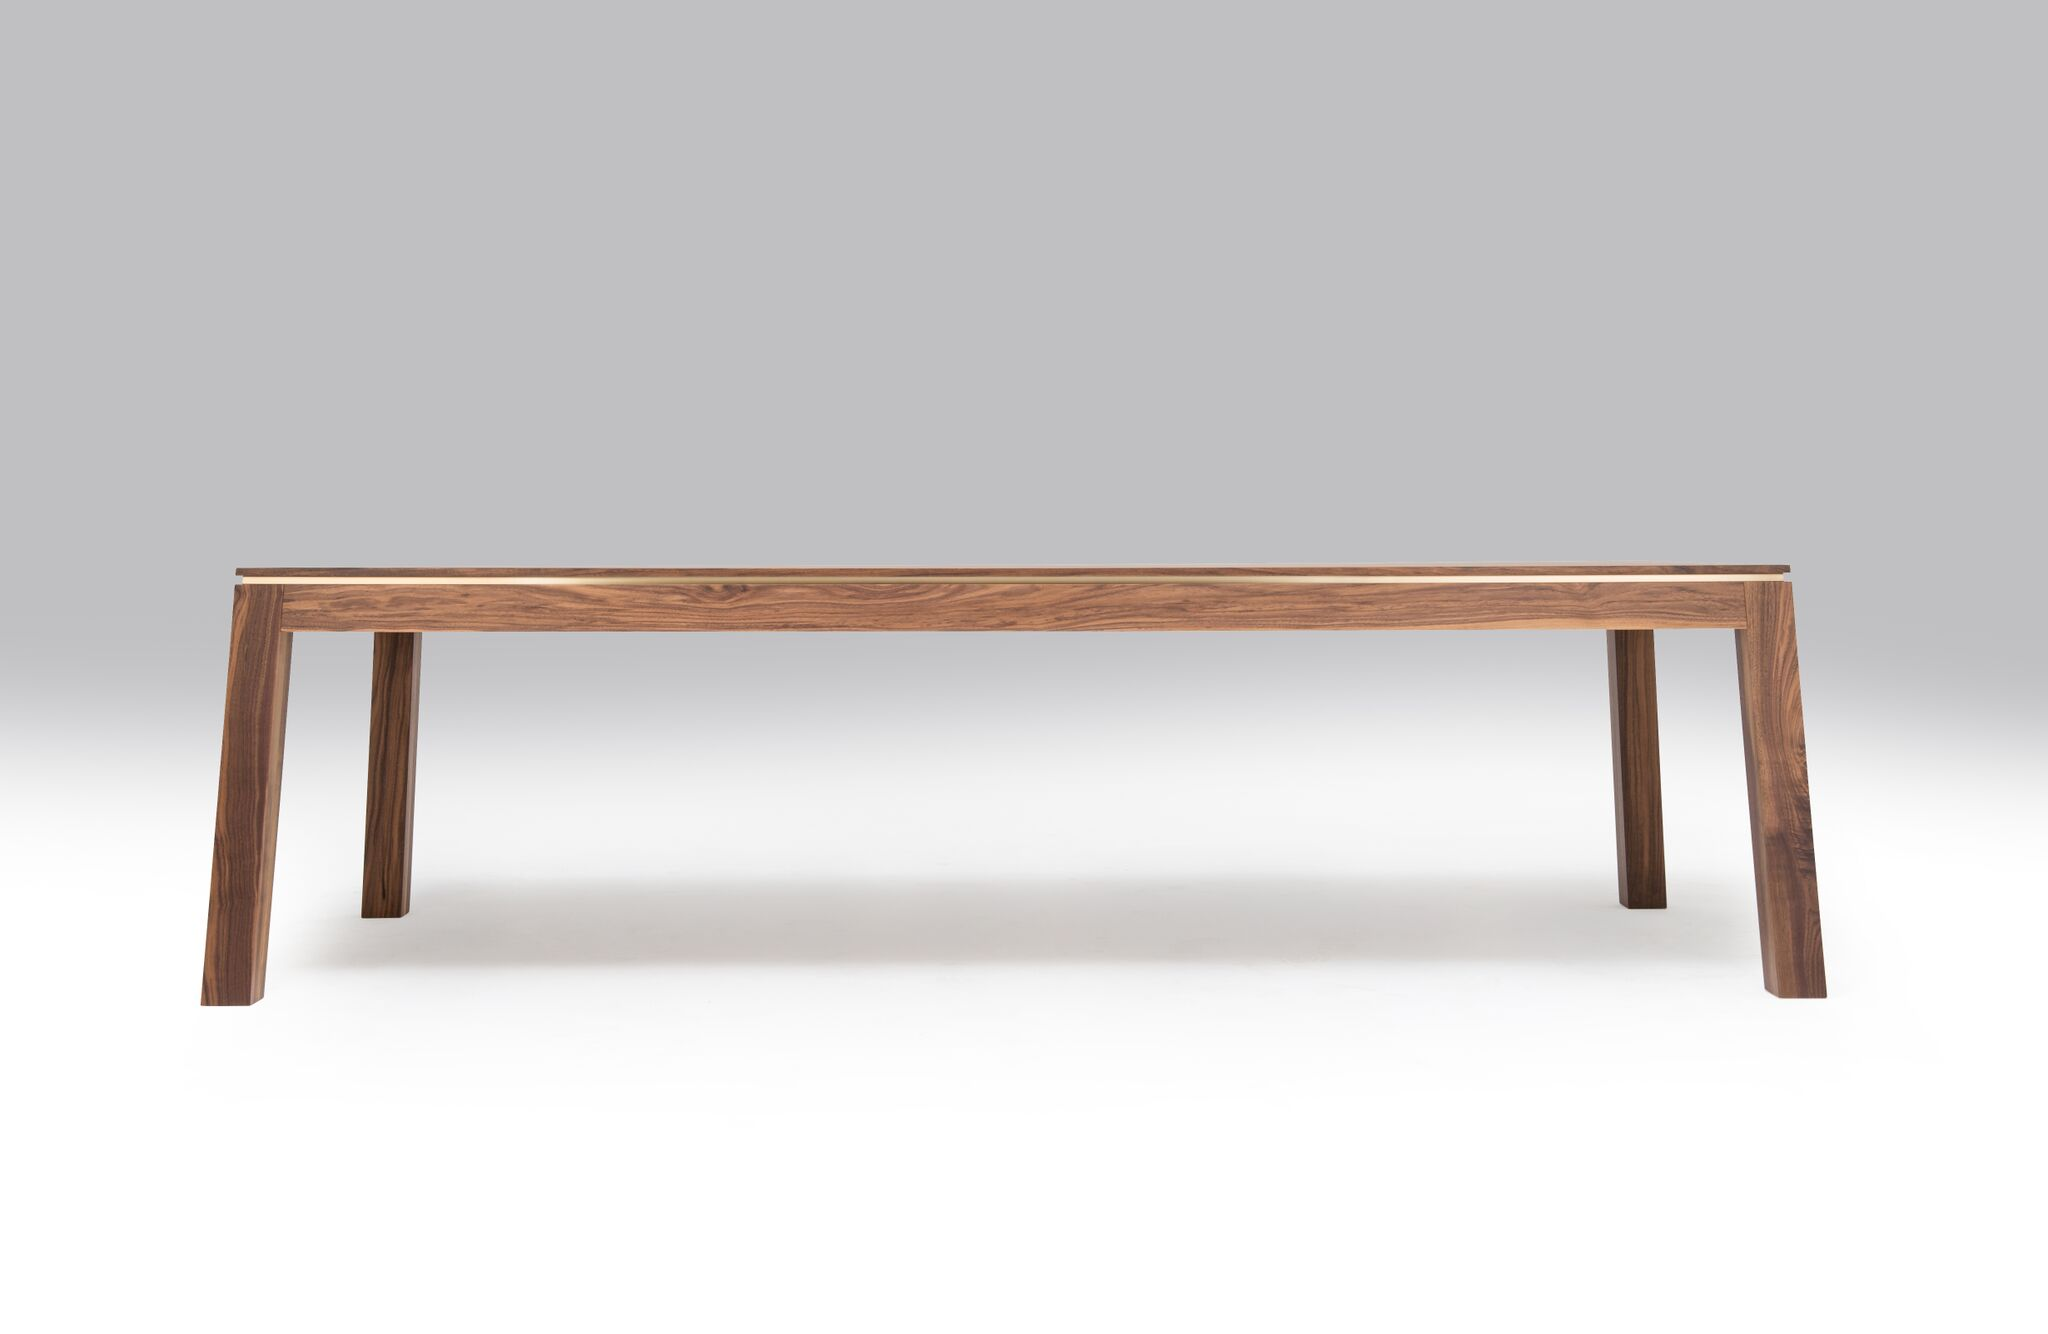 Gallery Of The Mila Table By Fraco Crea Local Australian Furniture Design Melbourne, Vic Image 17